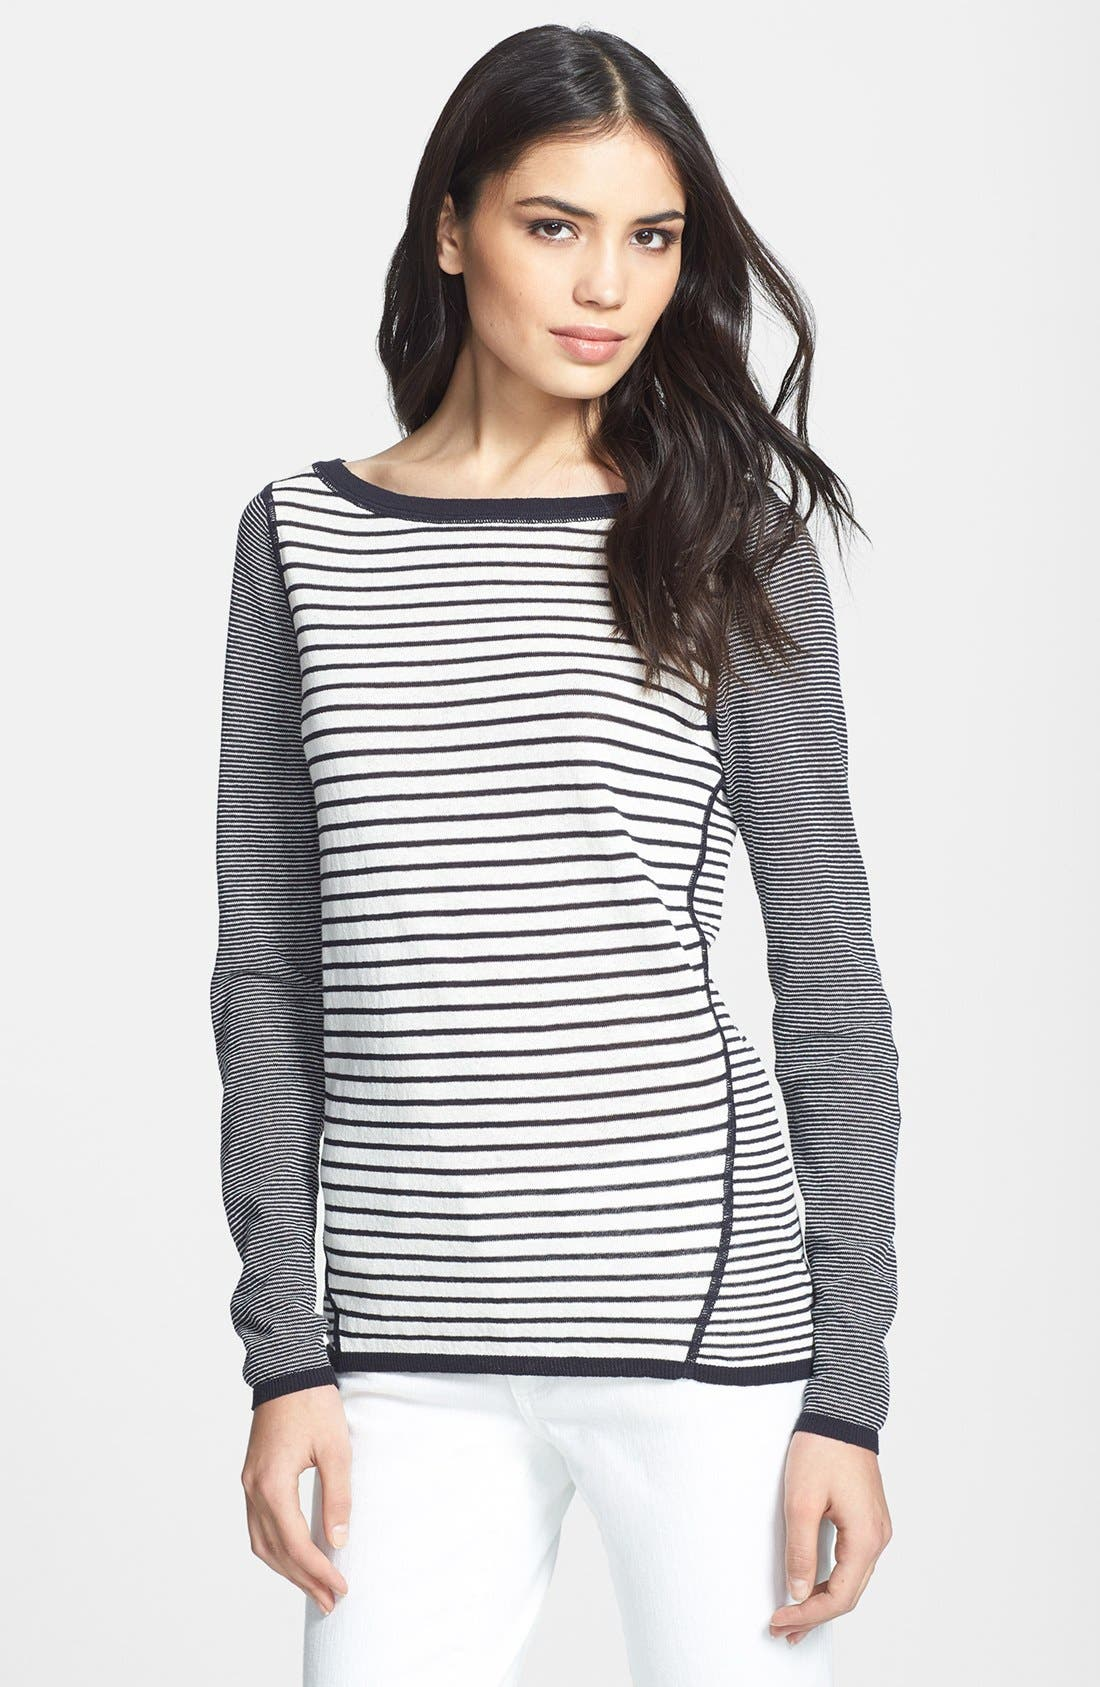 Alternate Image 1 Selected - Tory Burch 'Kamila' Mixed Stripe Sweater